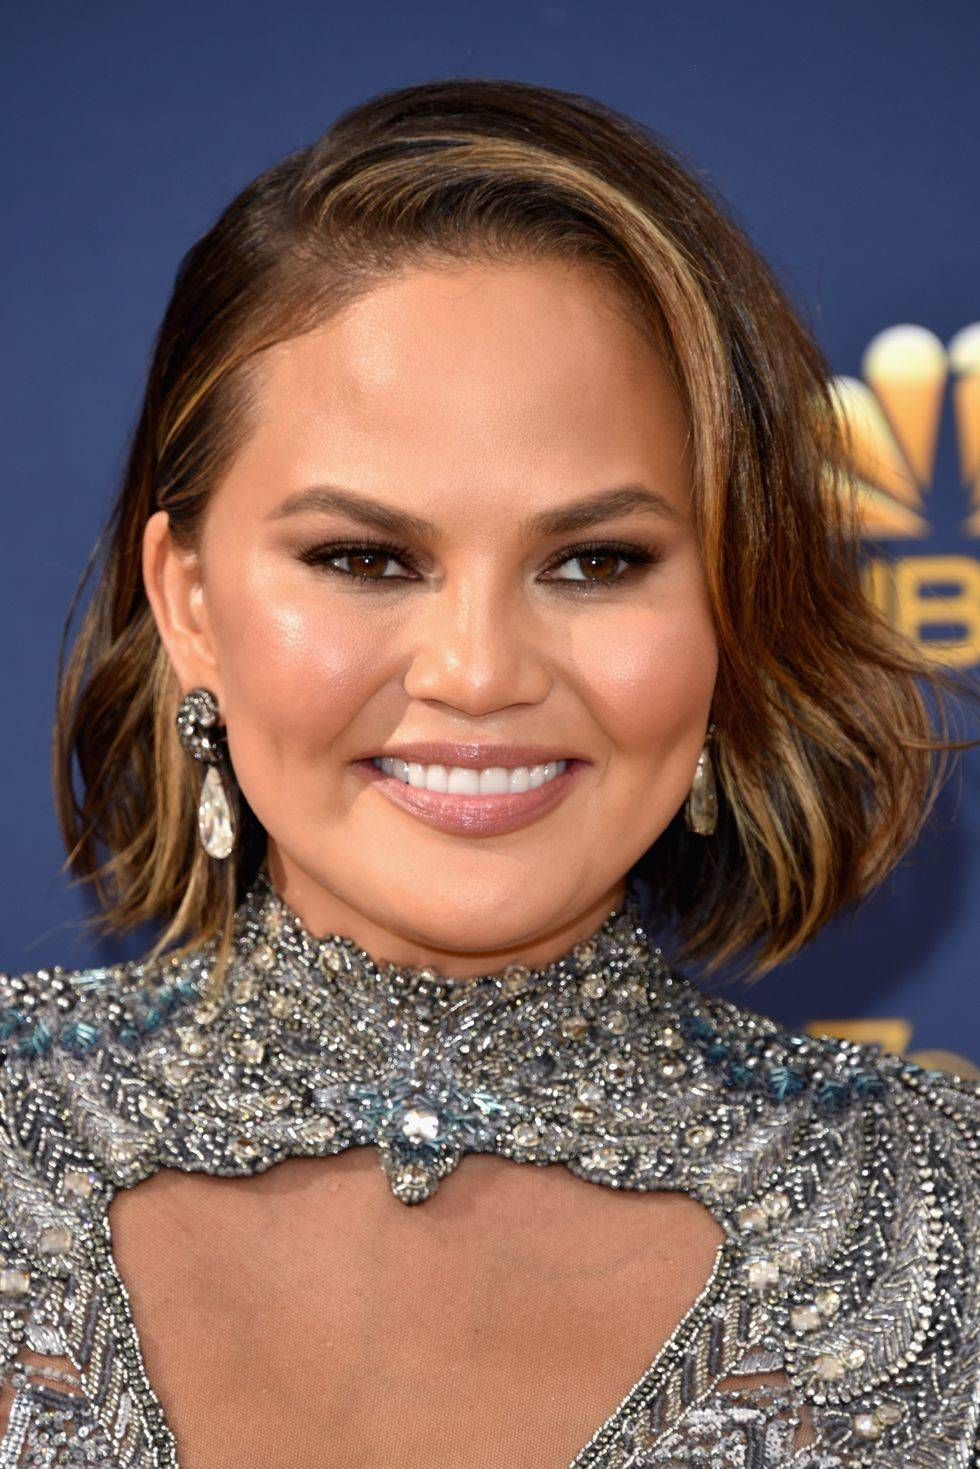 Chrissy Teigen sleek waves